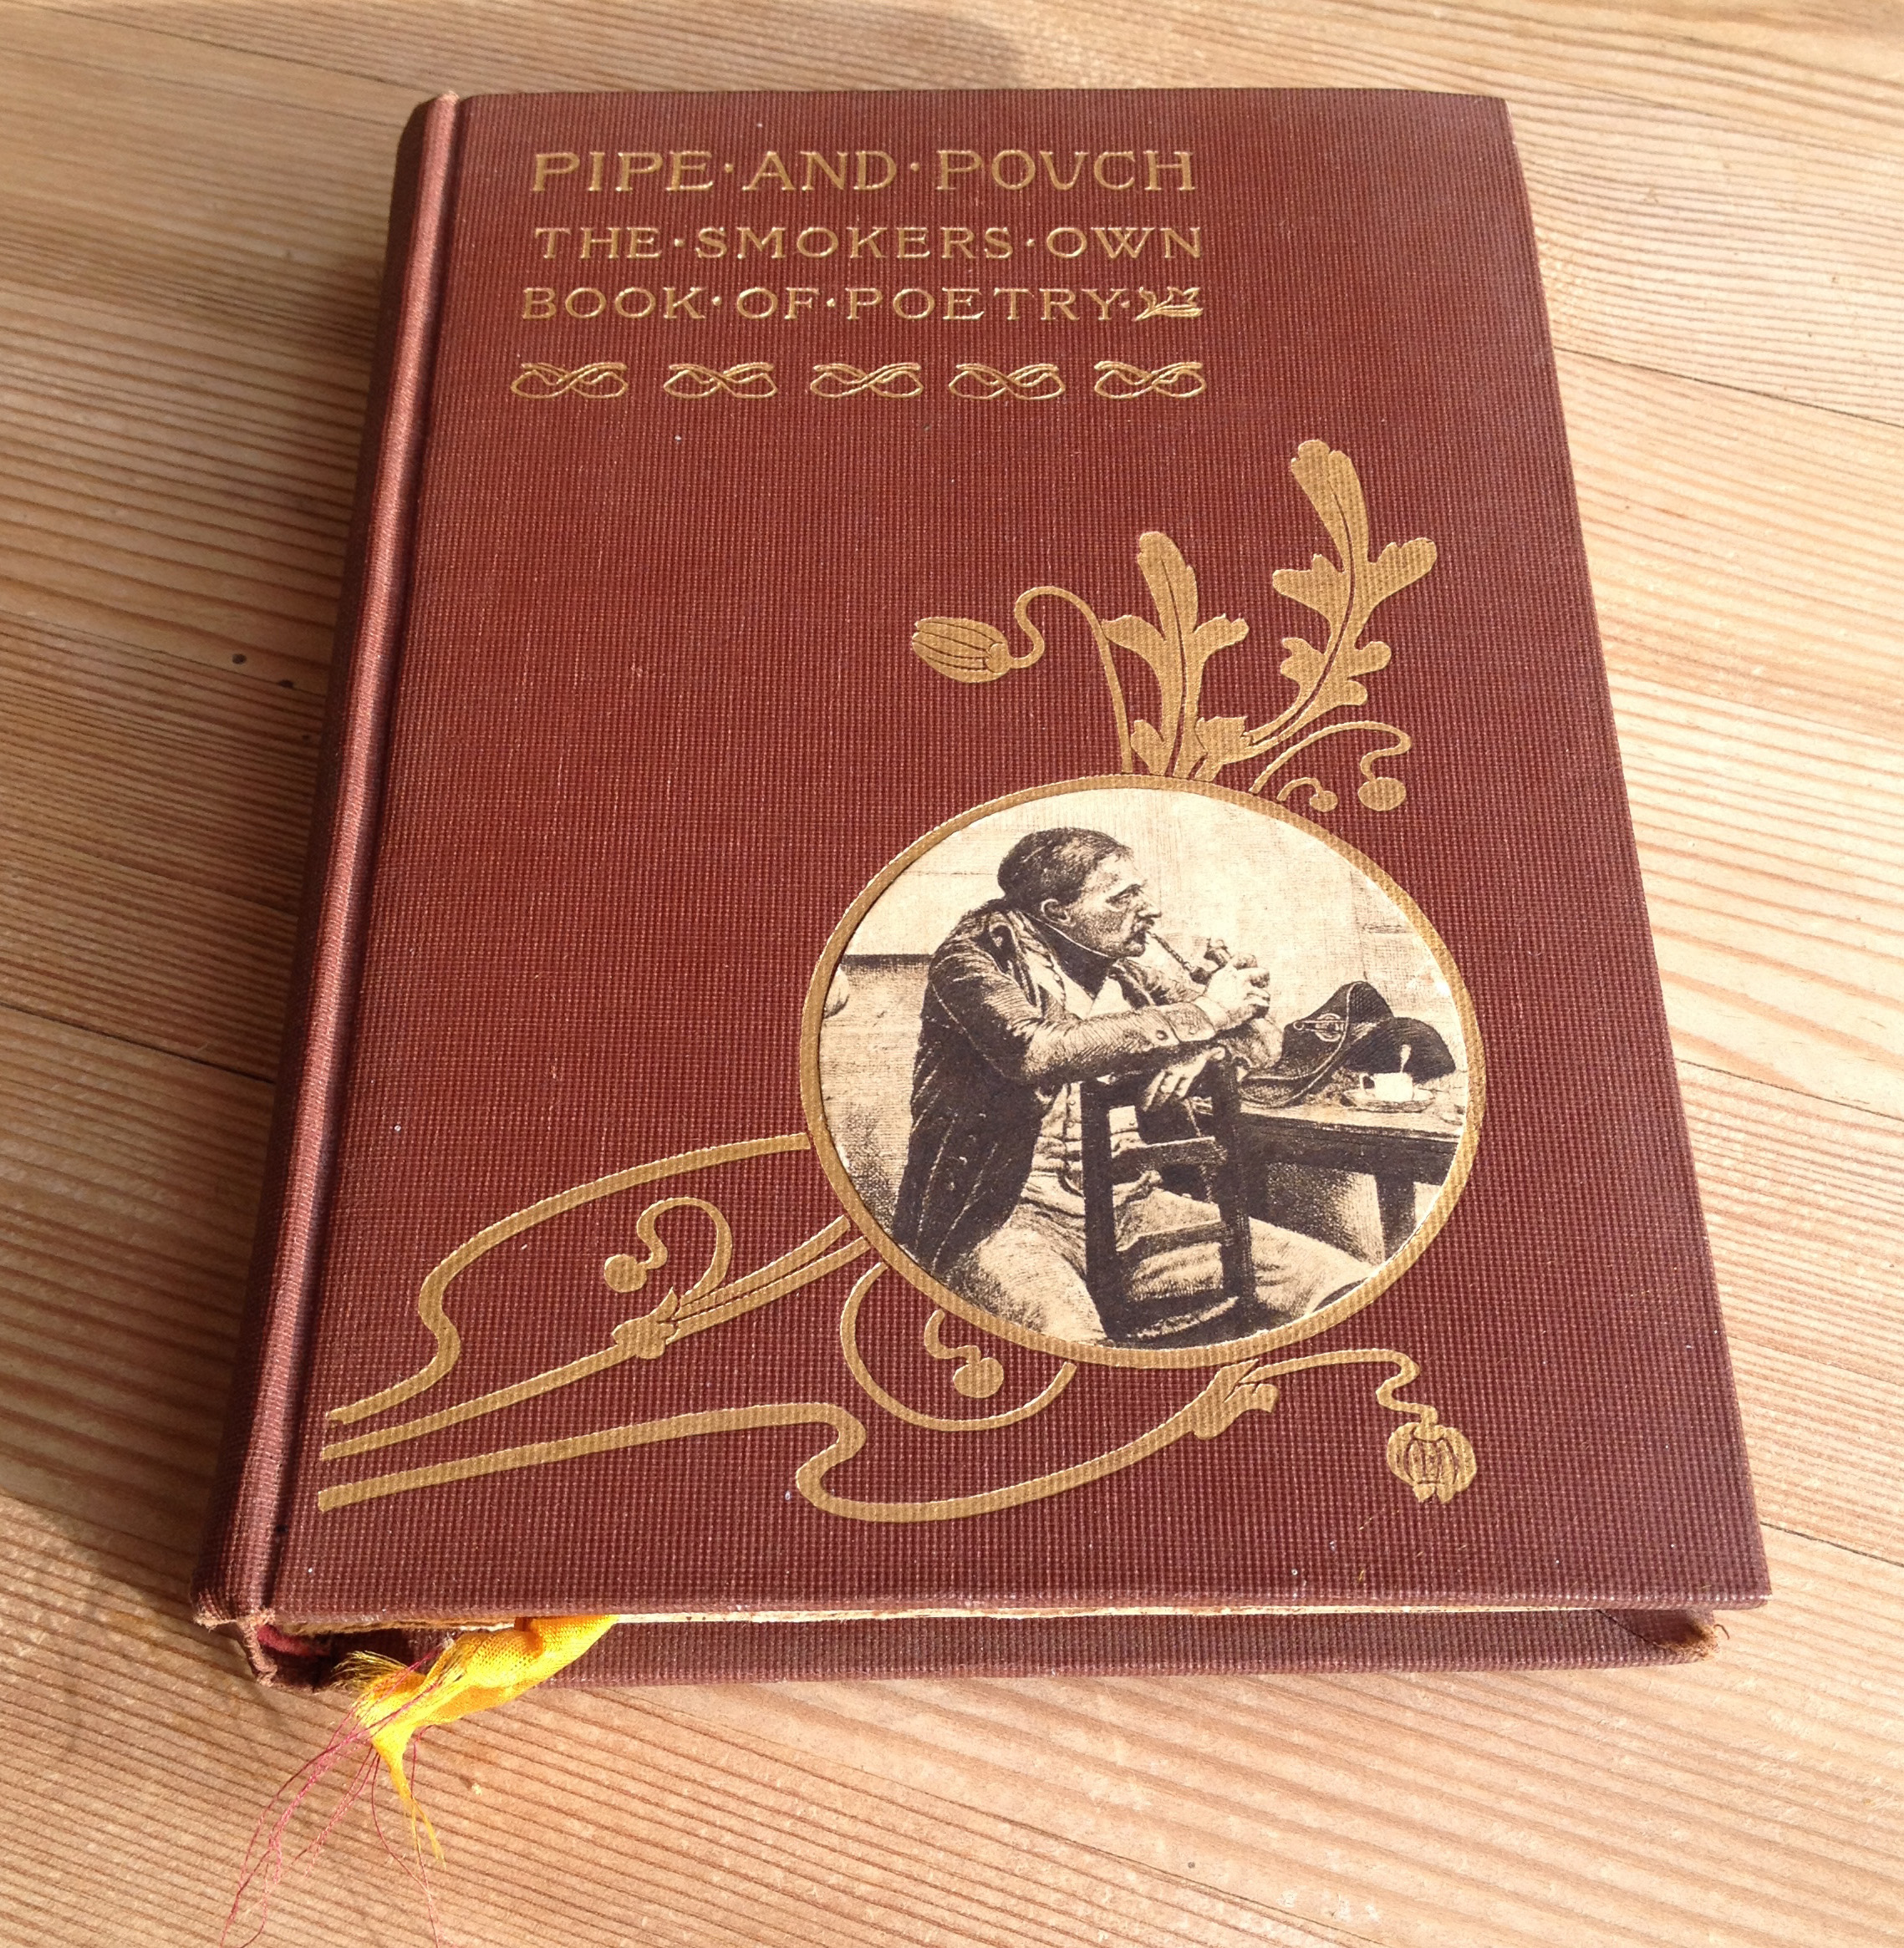 PIPE AND POUCH - The Smoker's own Book of Poetry